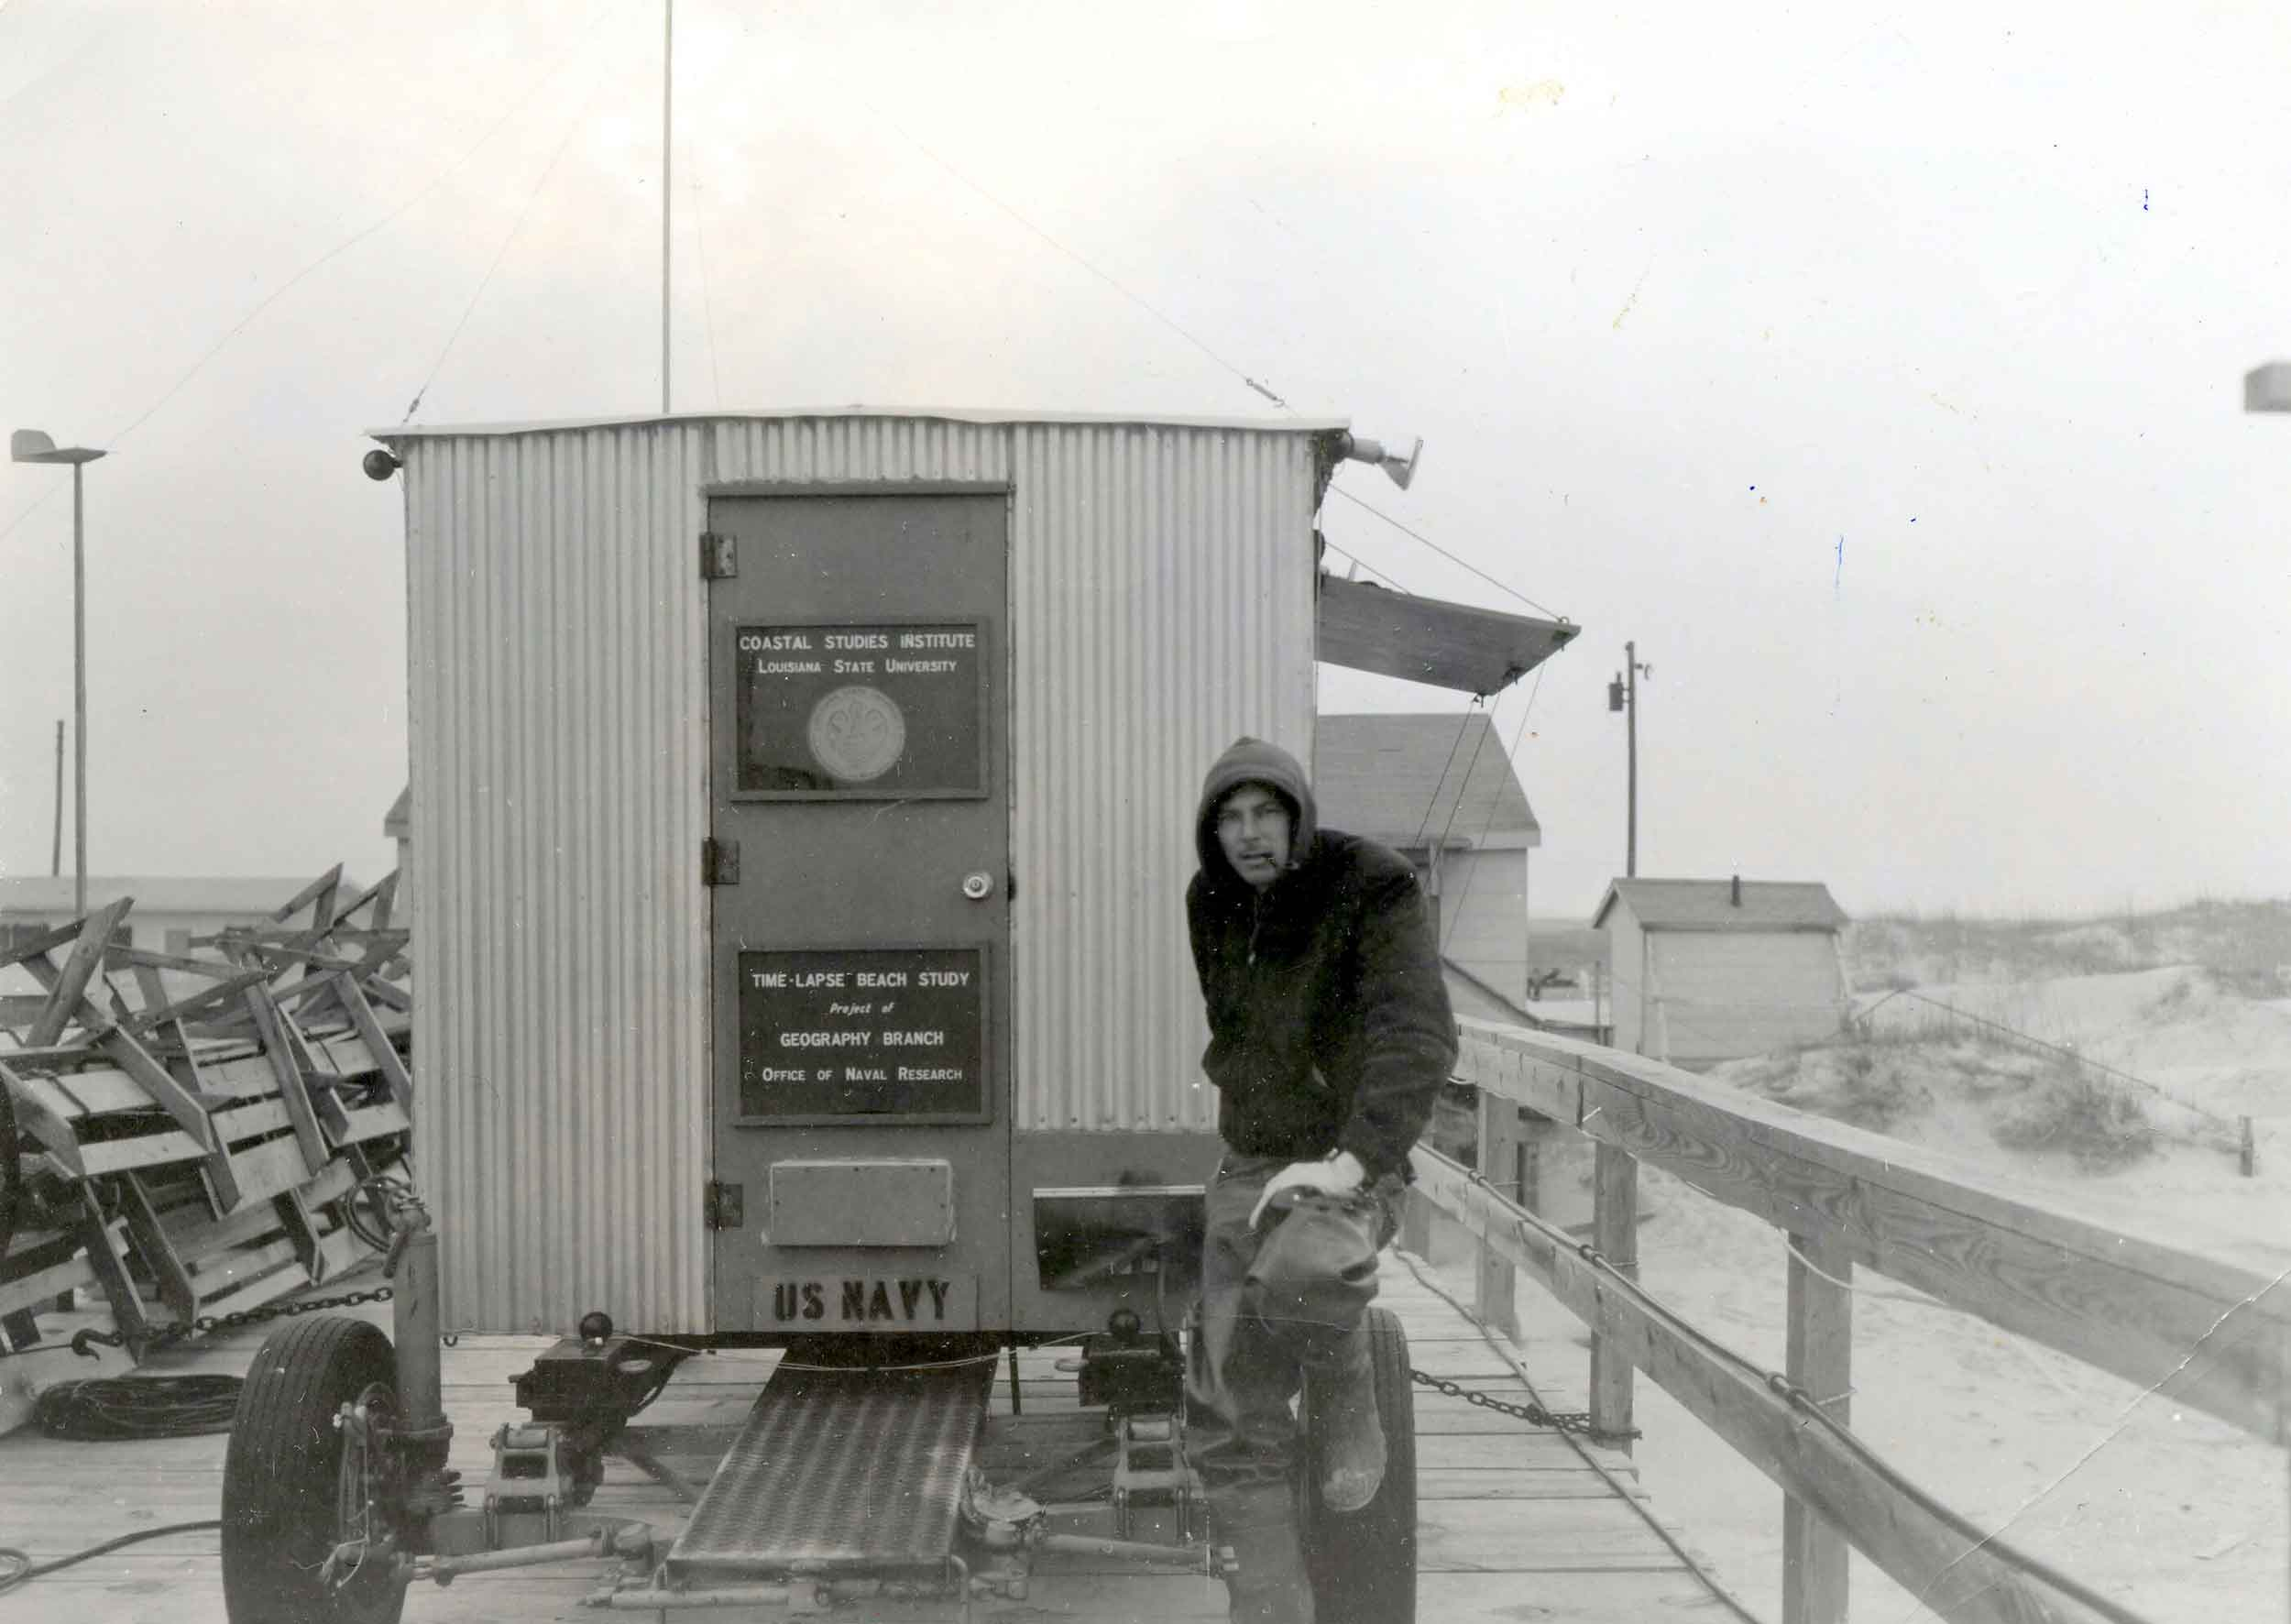 Not long after Robert Dolan set up a trailer with research equipment on Seaport Pier, a huge nor'easter pounded the barrier islands of North Carolina.